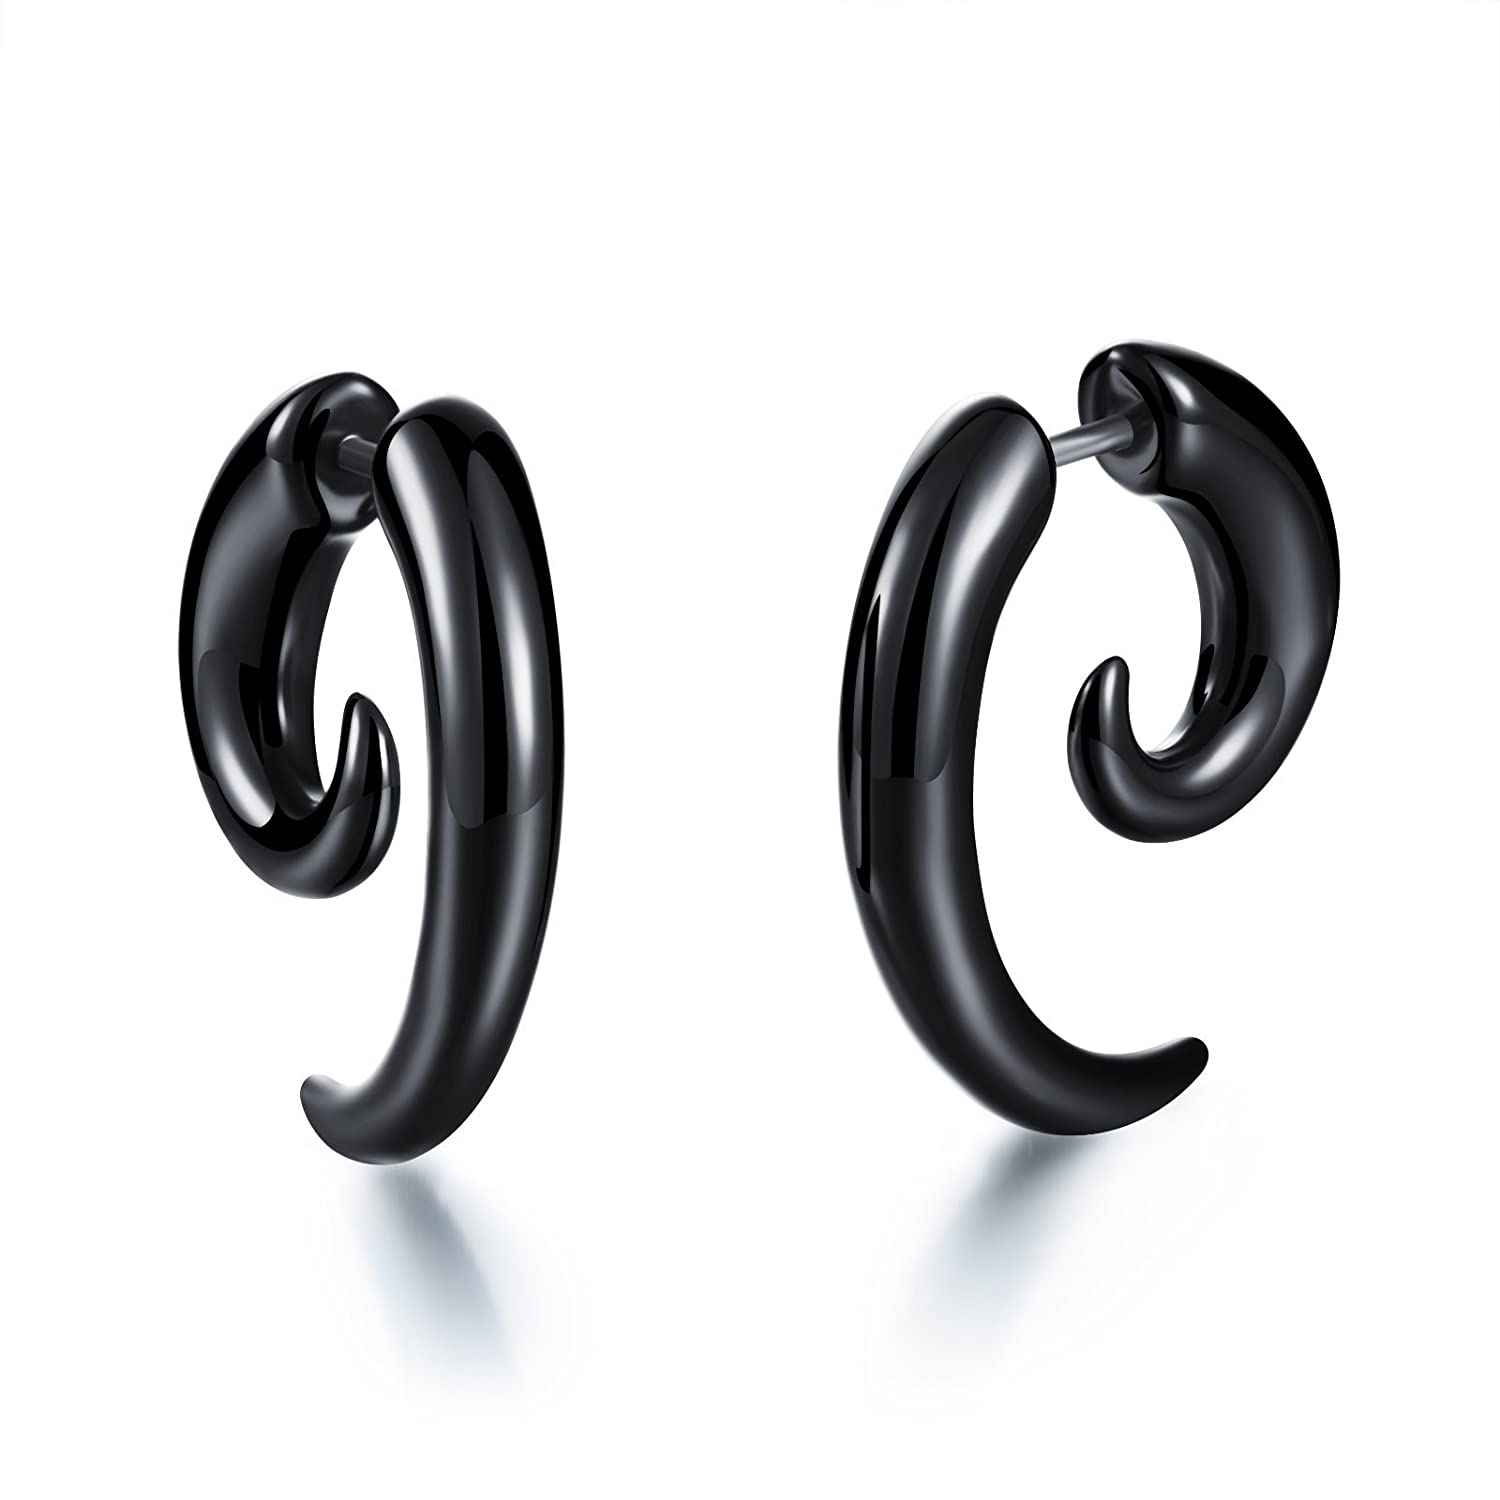 Mintik Jewelry Men's Womens Piercing Black PVC Spiral Snail Plug Earrings MJ-SE-022